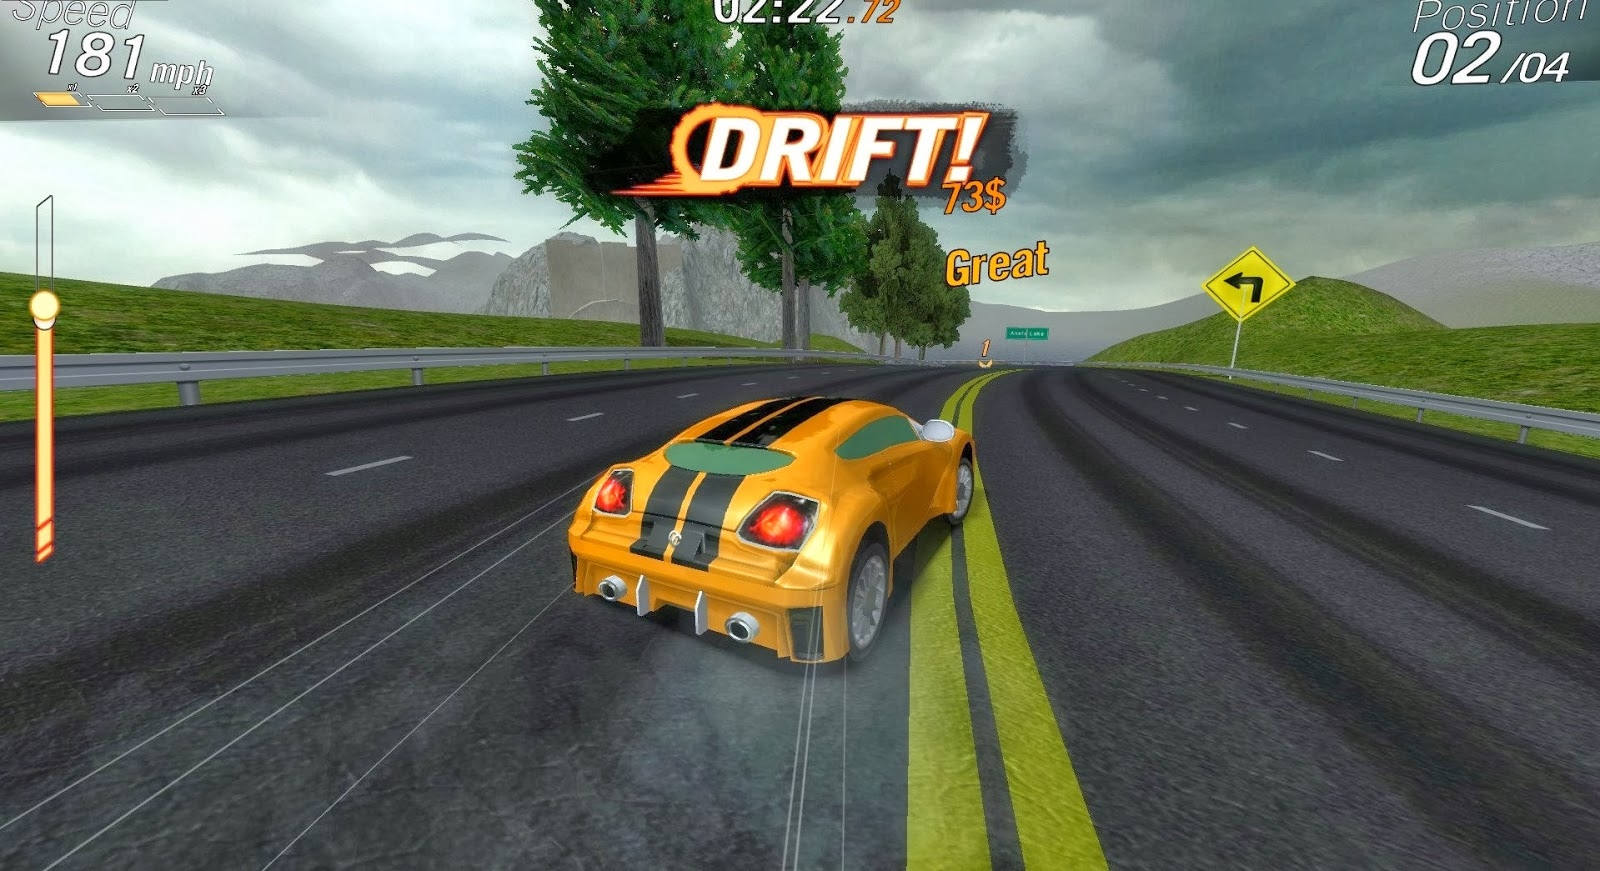 Crazy Cars Hit The Road Game Free Download Full Version For Pc